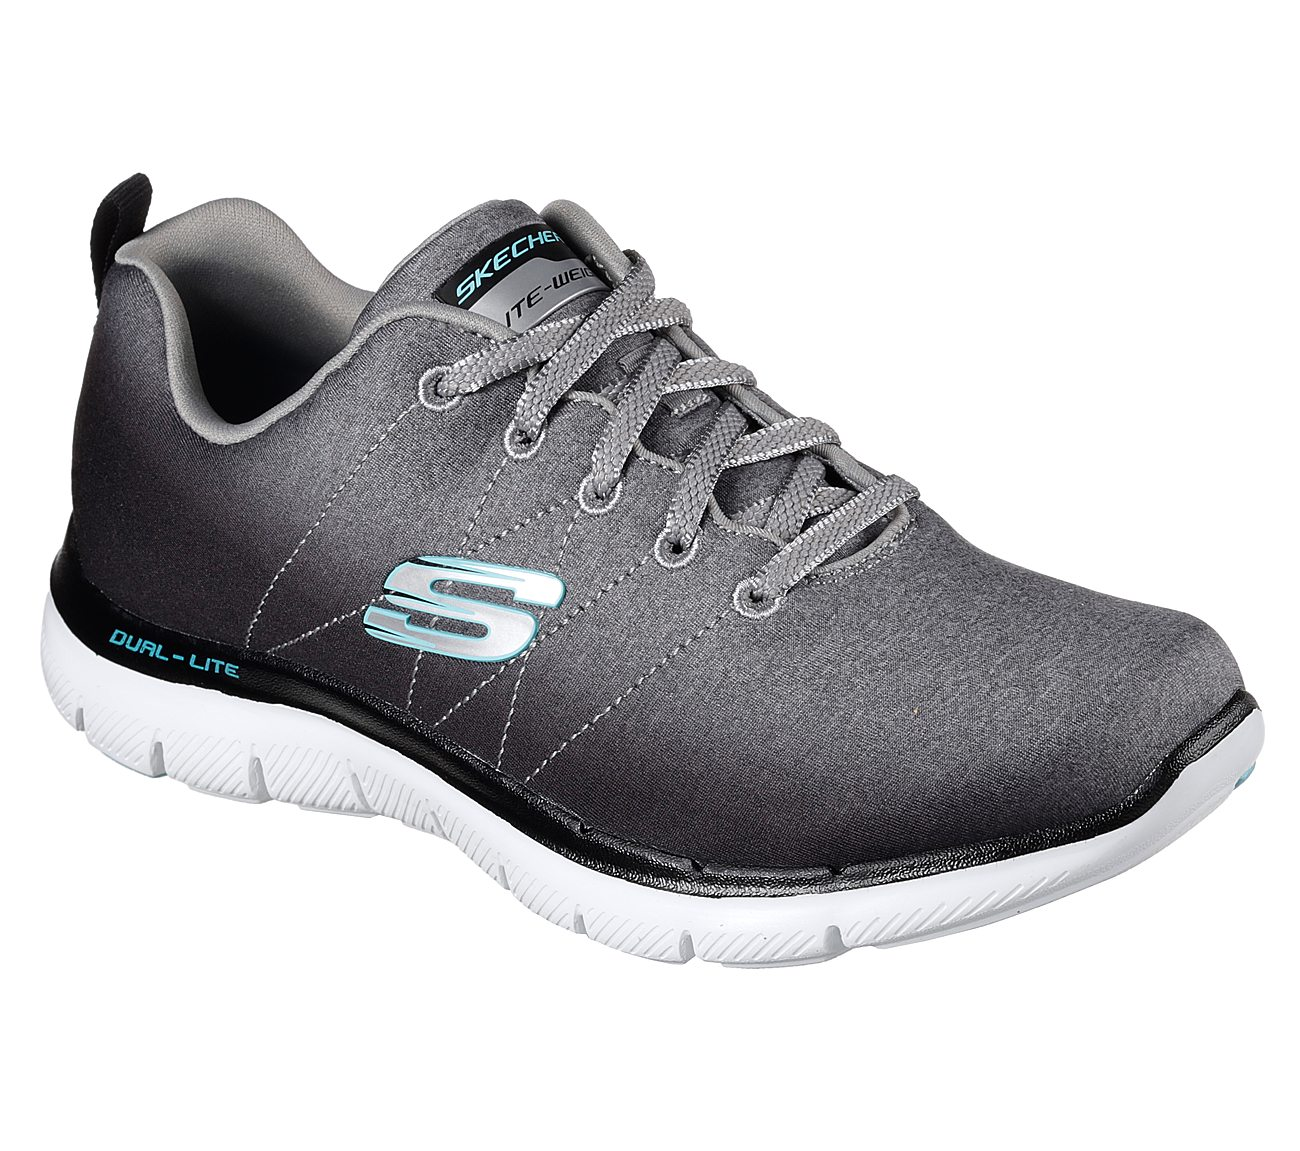 9dce517f41d55 Buy skechers flex appeal mens white > OFF72% Discounted